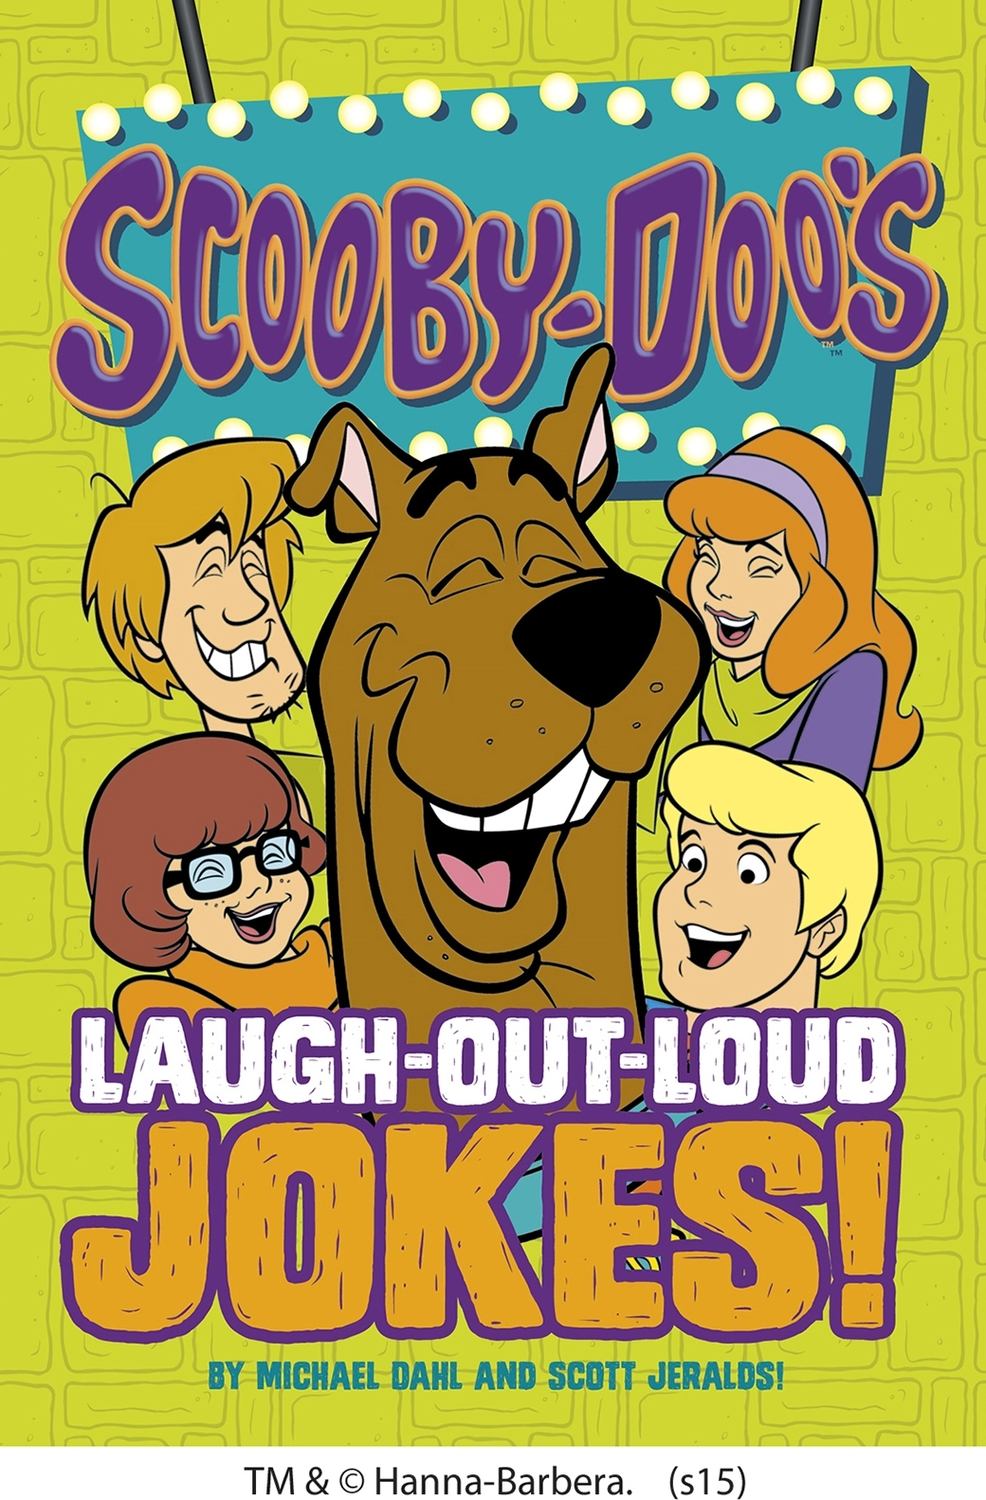 Scooby-doo\u0027s Laugh-out-loud Jokes! - Capstone Publishing - Capstone Publishing